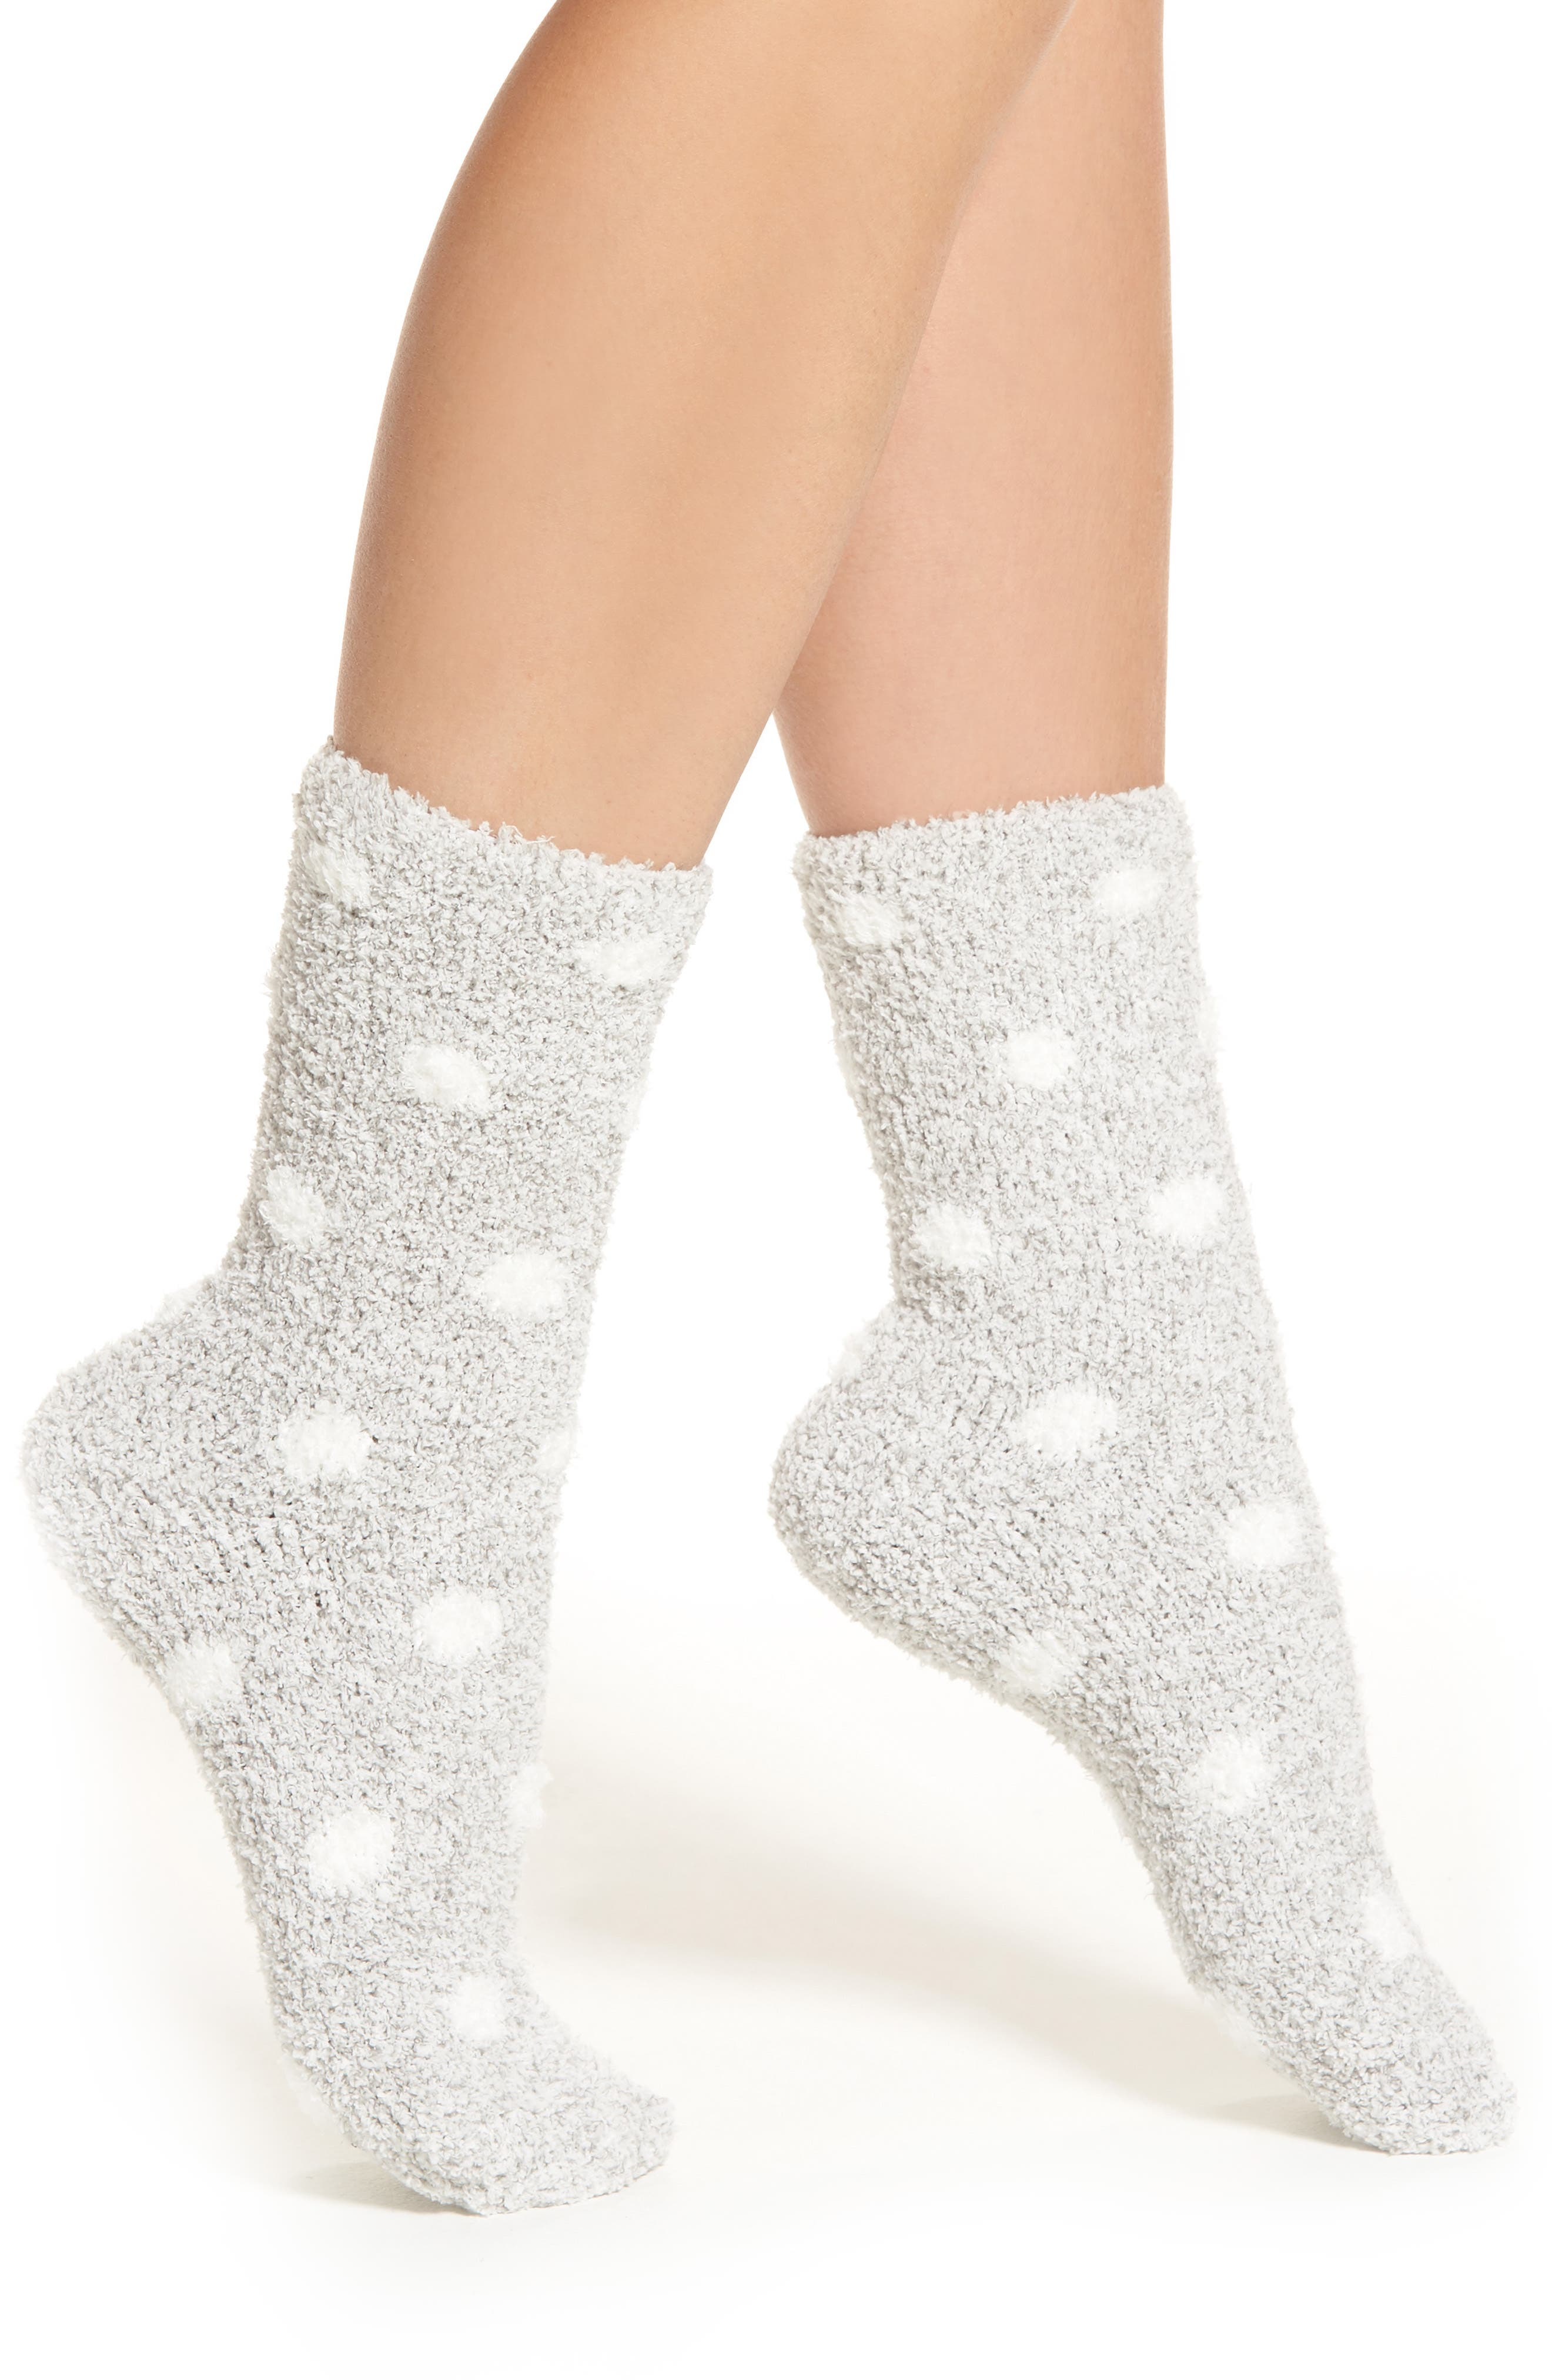 Butter Crew Socks,                         Main,                         color, Grey With White Dot